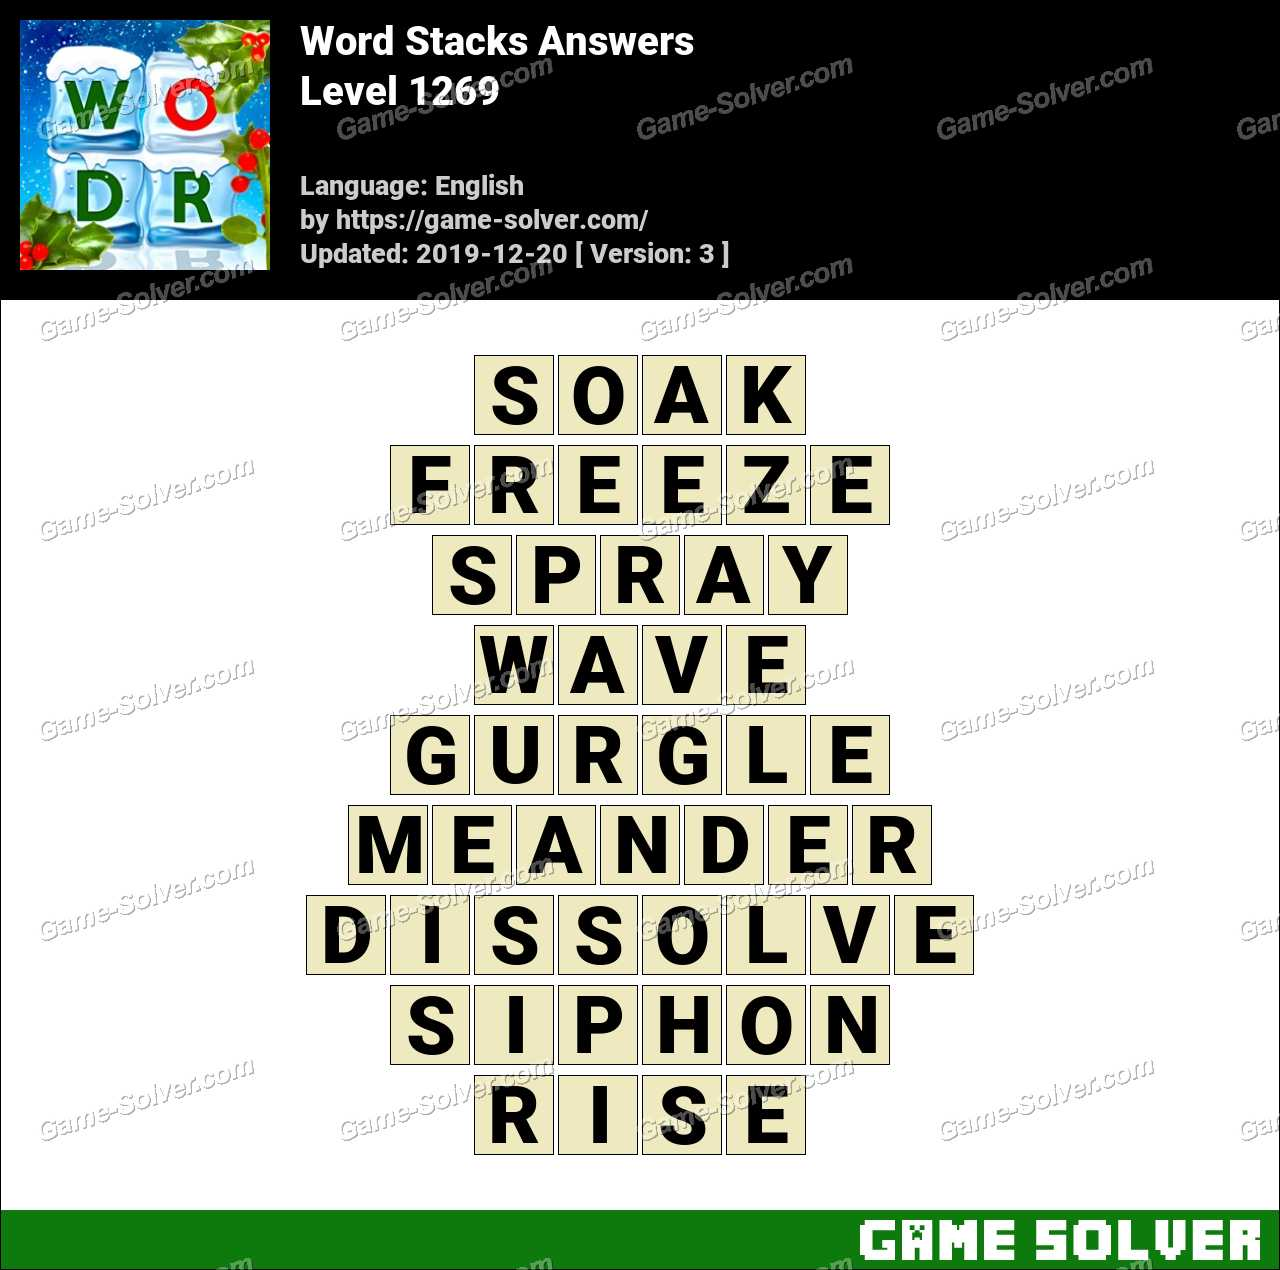 Word Stacks Level 1269 Answers